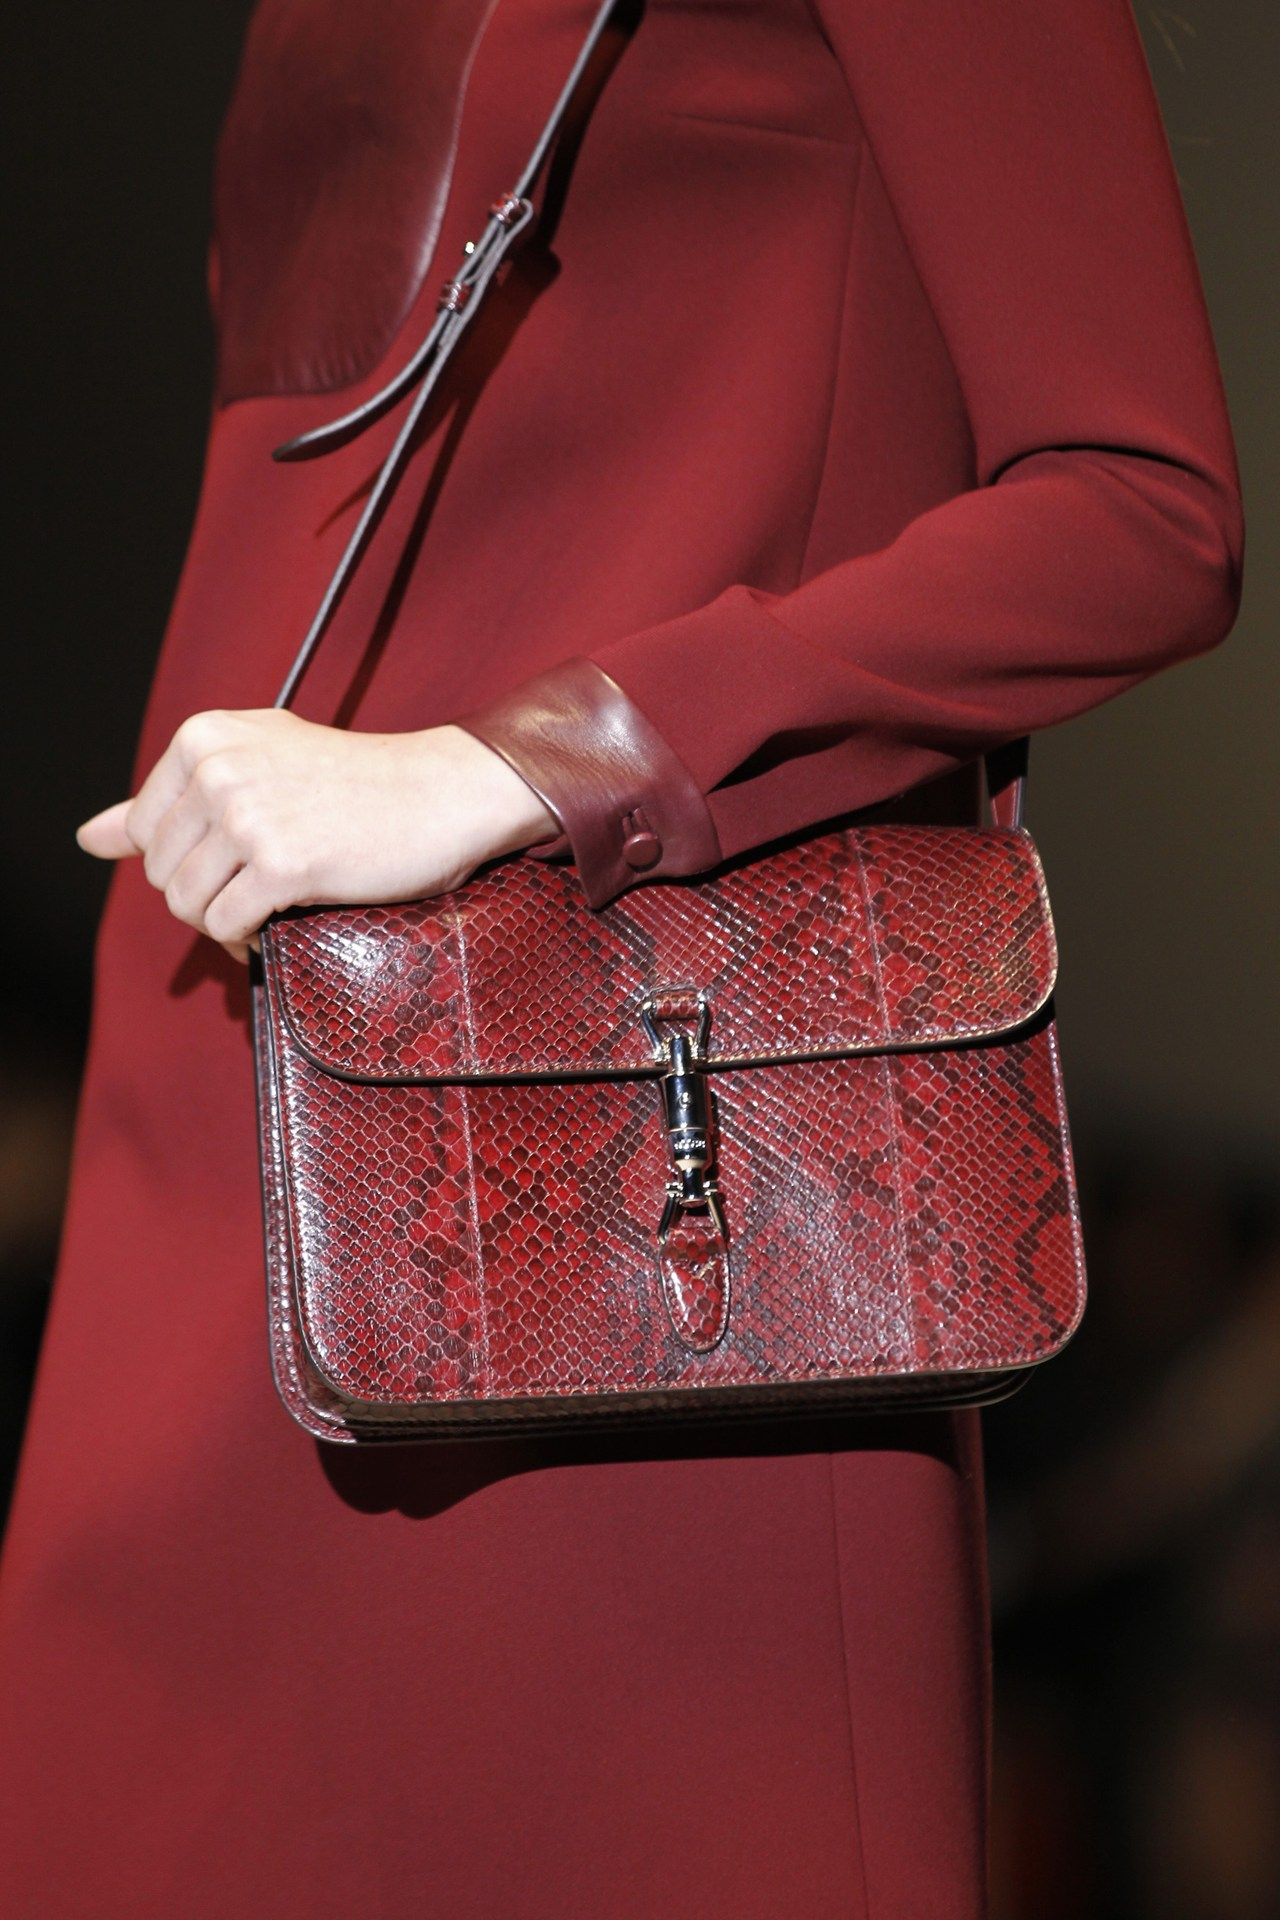 7bccceb8f8 Gucci Autumn/Winter 2014 Ready-To-Wear | bags | Moda, Acessórios, Bolsas